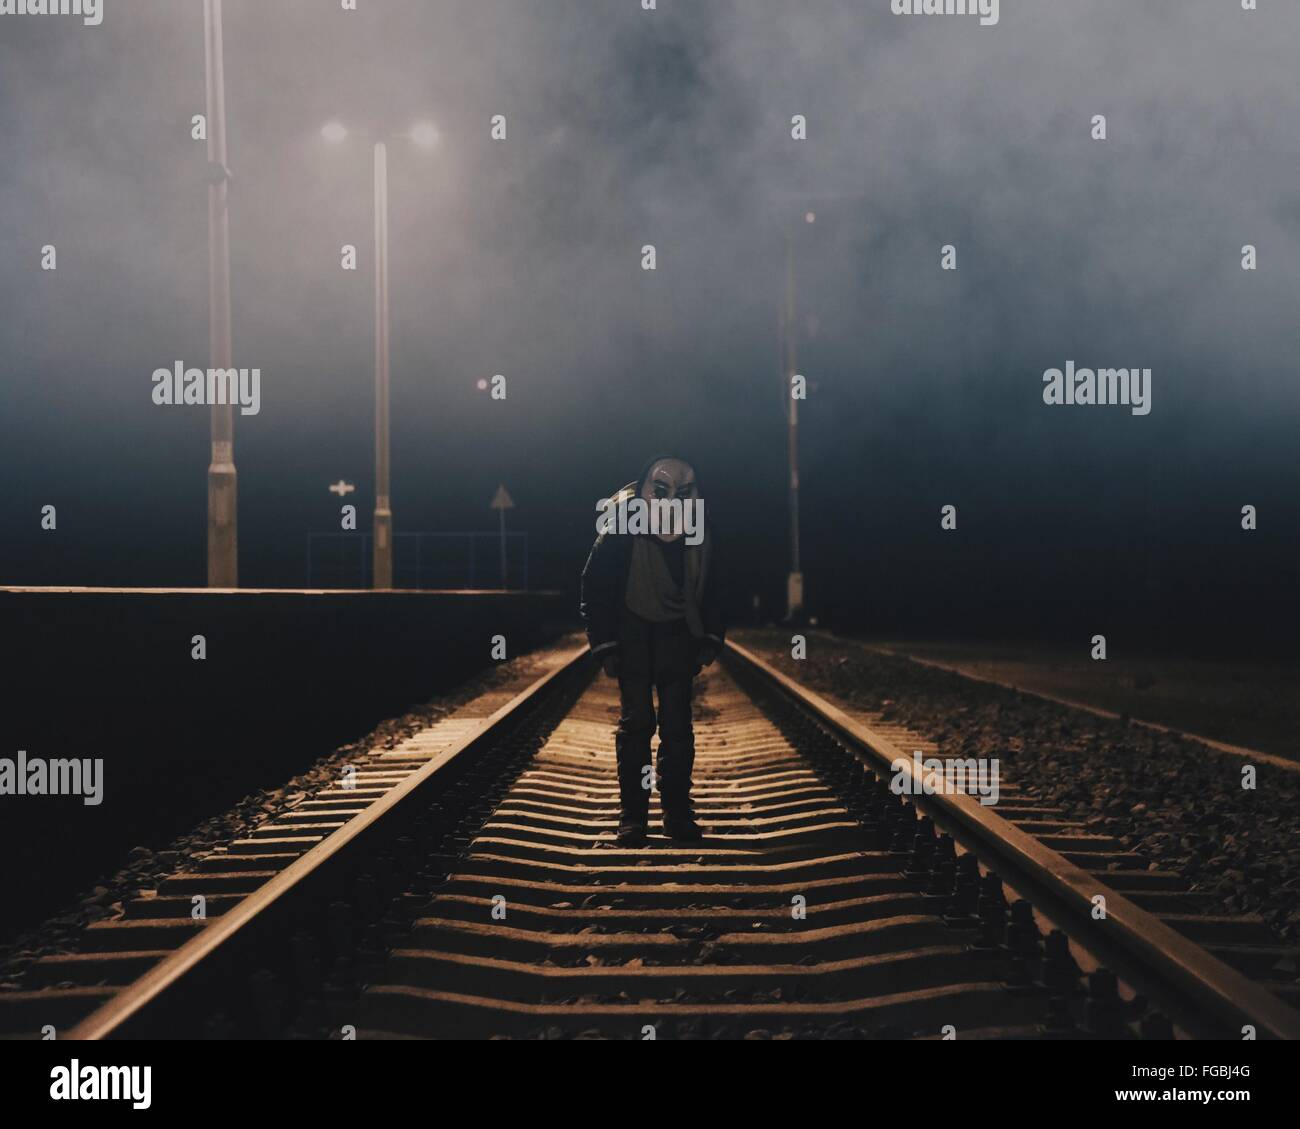 Man Wearing Spooky Mask While Standing On Railroad Track During Halloween - Stock Image